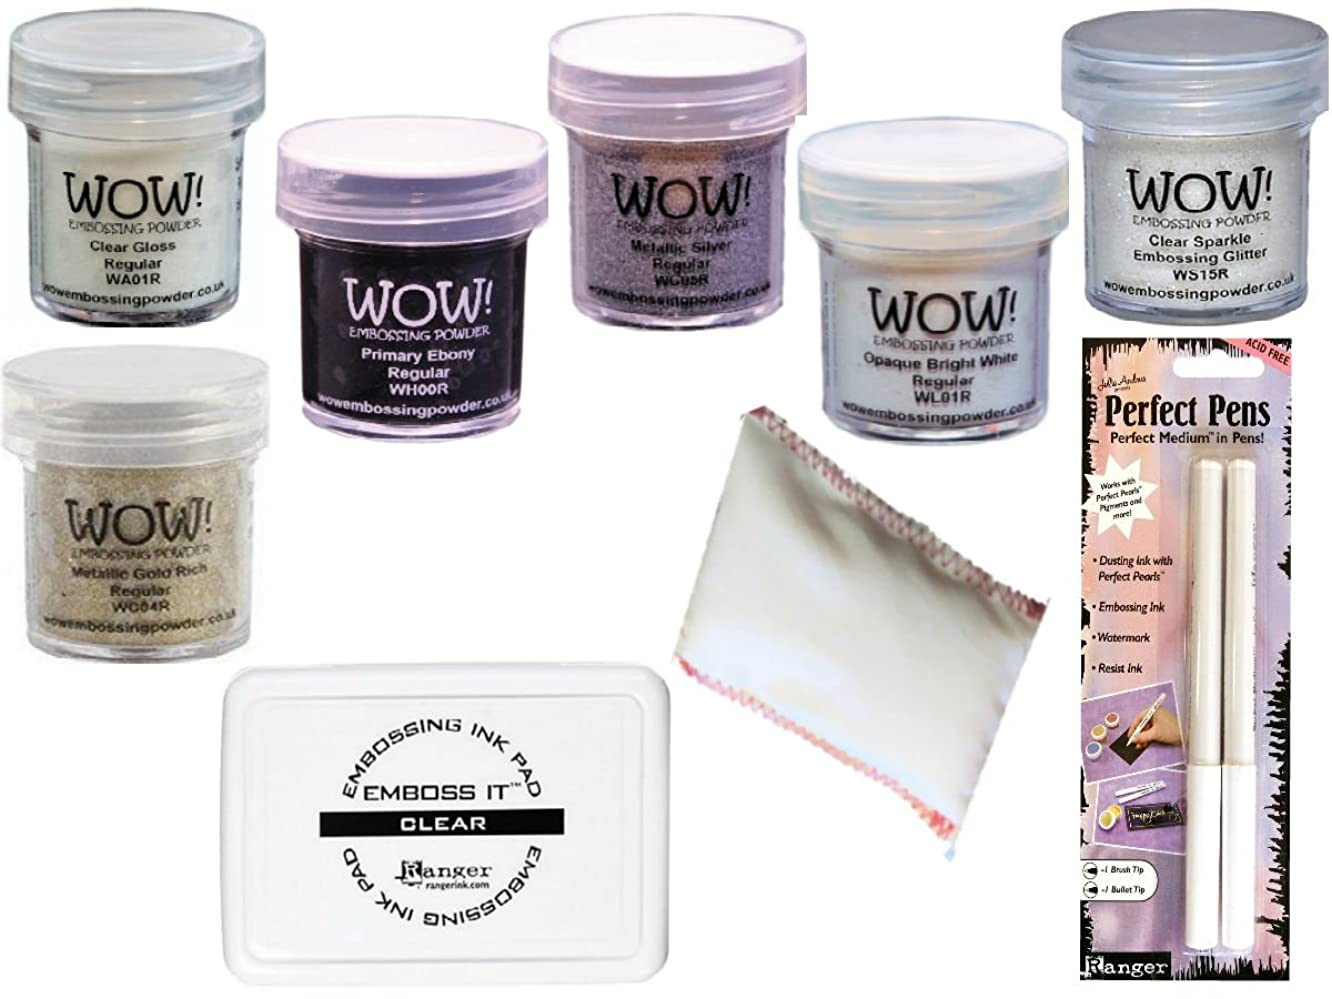 Embossing Starter Kit with Powders, Foam Pad, Static Pad and Pens (White/Clear)